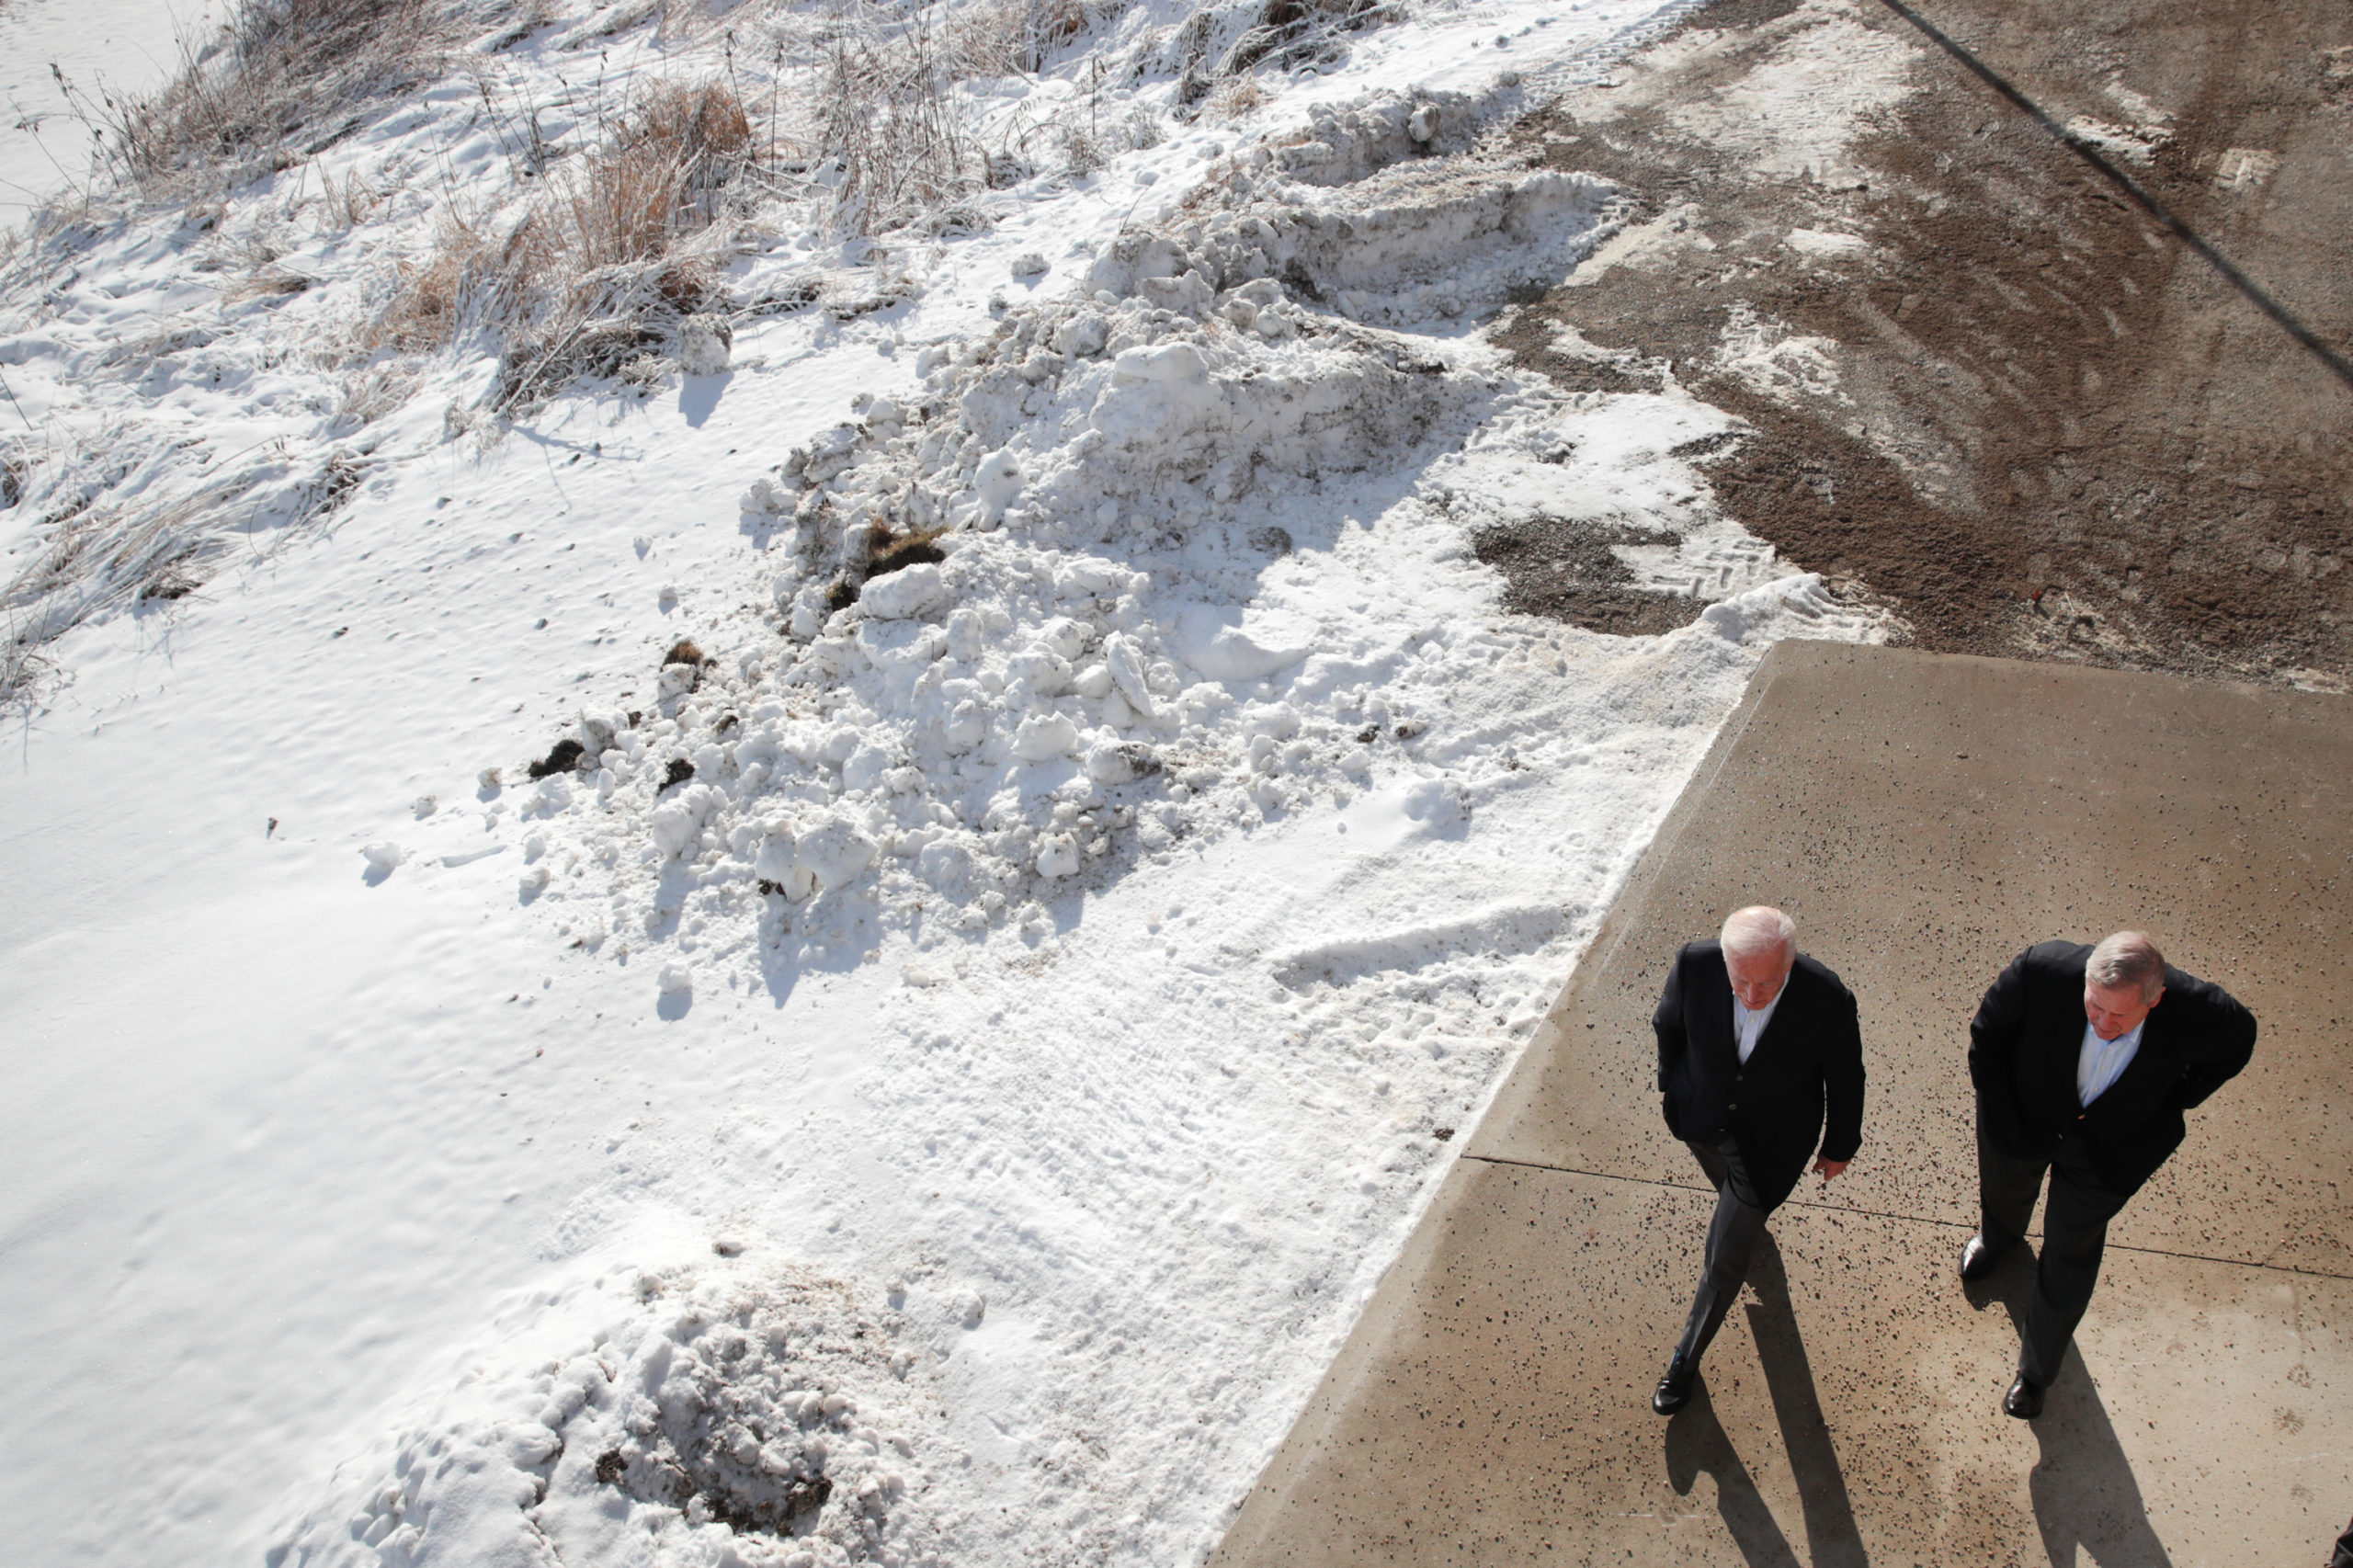 President-elect Joe Biden arrives at a campaign stop with former USDA Sec. Tom Vilsack in Algona, Iowa on Dec. 2, 2019. (Scott Olson/Getty Images)